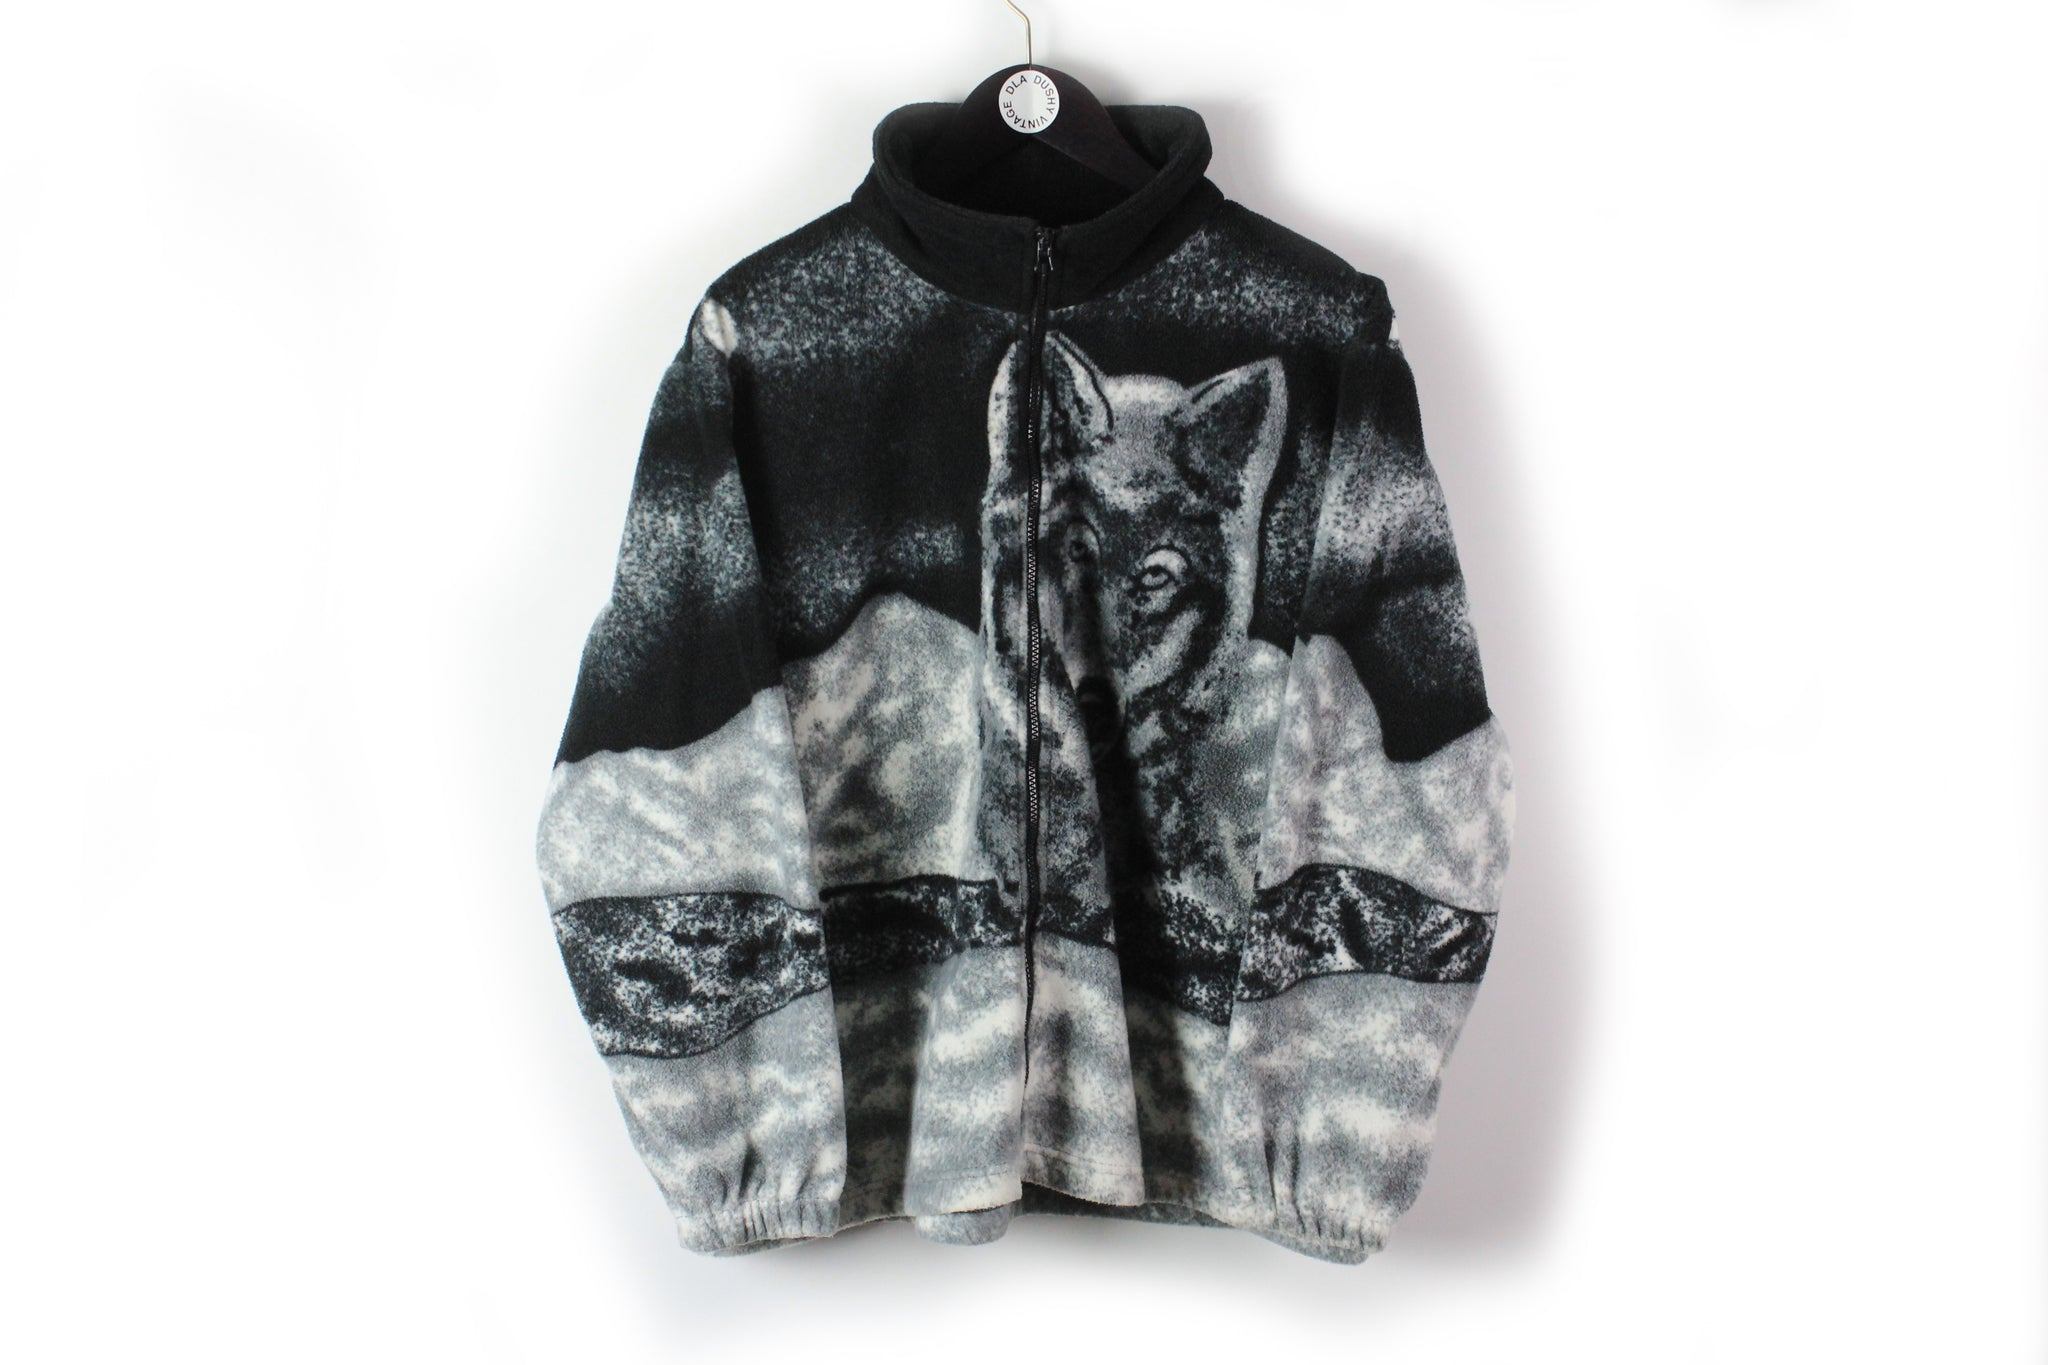 Vintage Wolf Fleece Full Zip Medium black gray animal pattern sweater winter hype cardigan